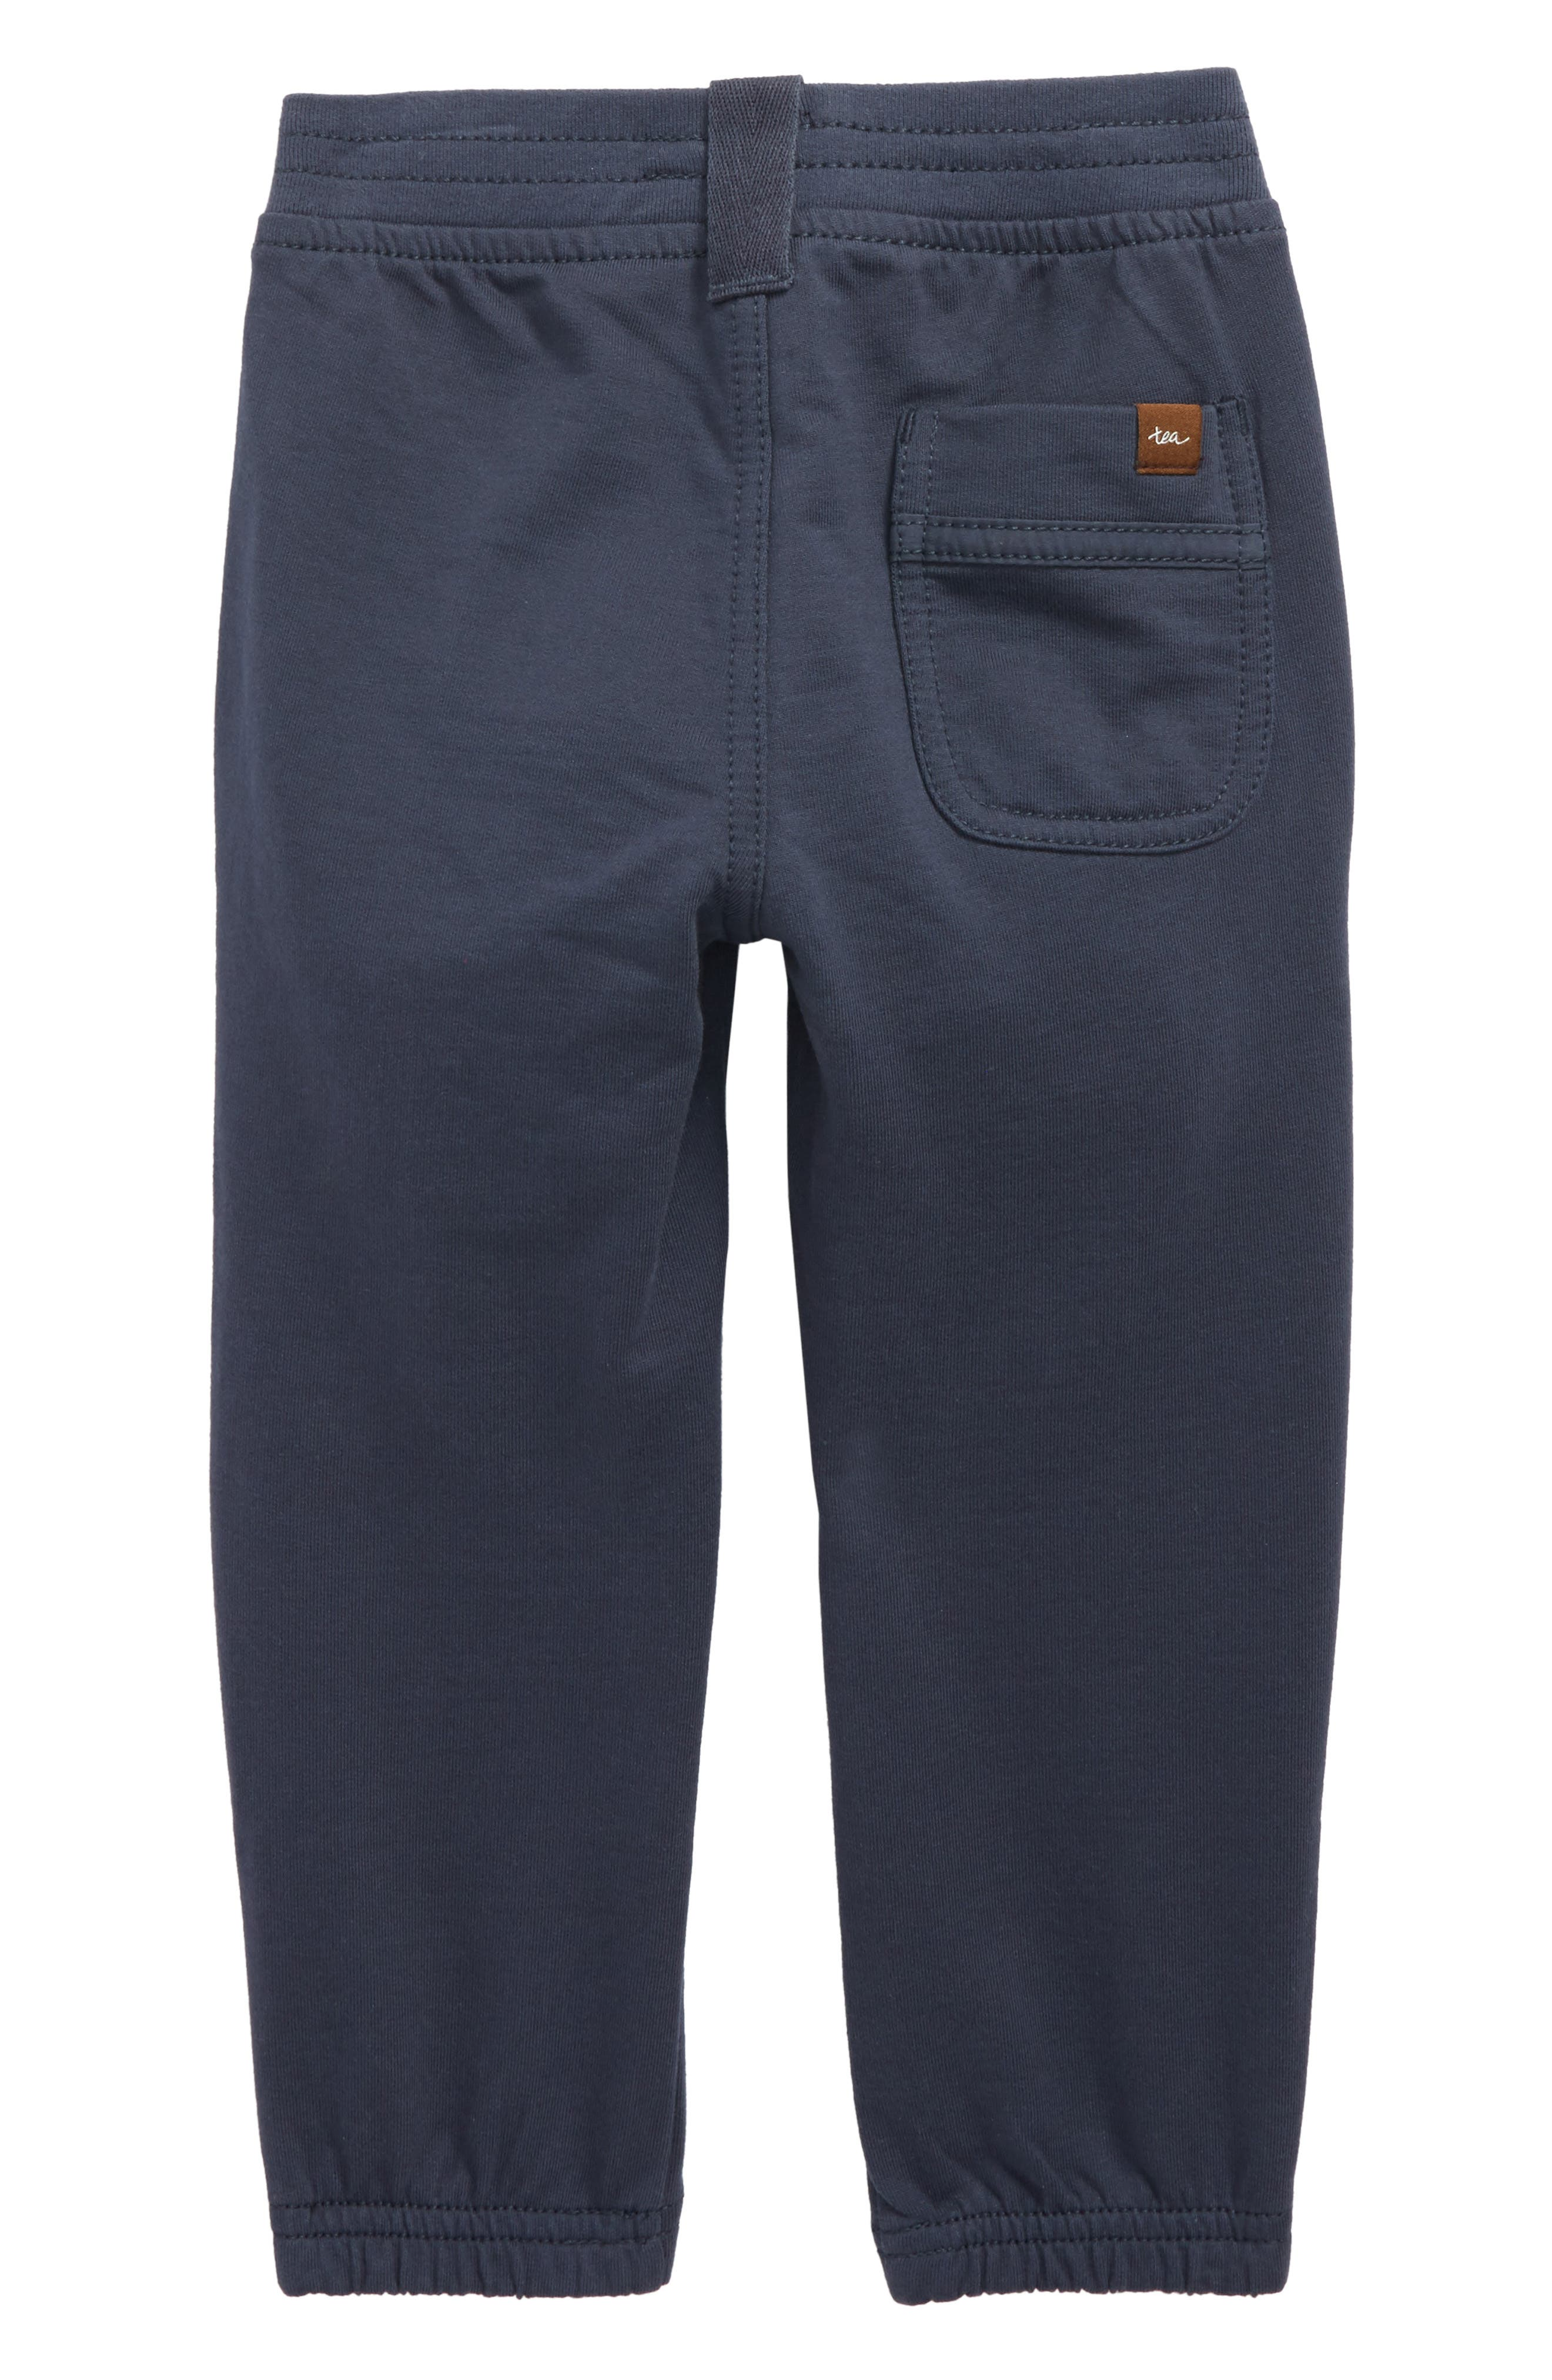 French Terry Moto Pants,                             Alternate thumbnail 2, color,                             411